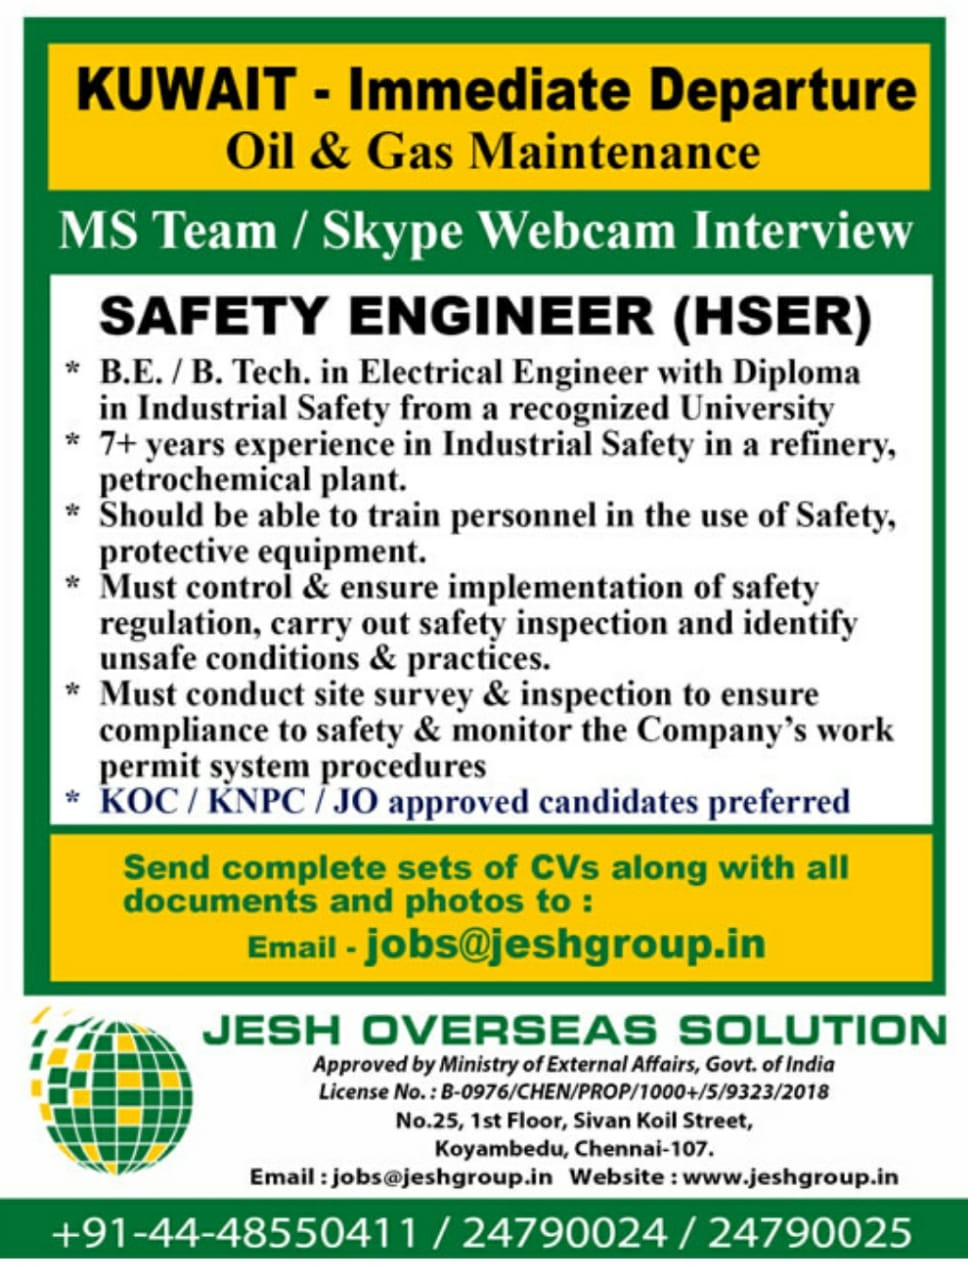 WALK-IN INTERVIEW AT CHENNAI FOR KUWAIT OIL AND GAS MAINTAINANCE